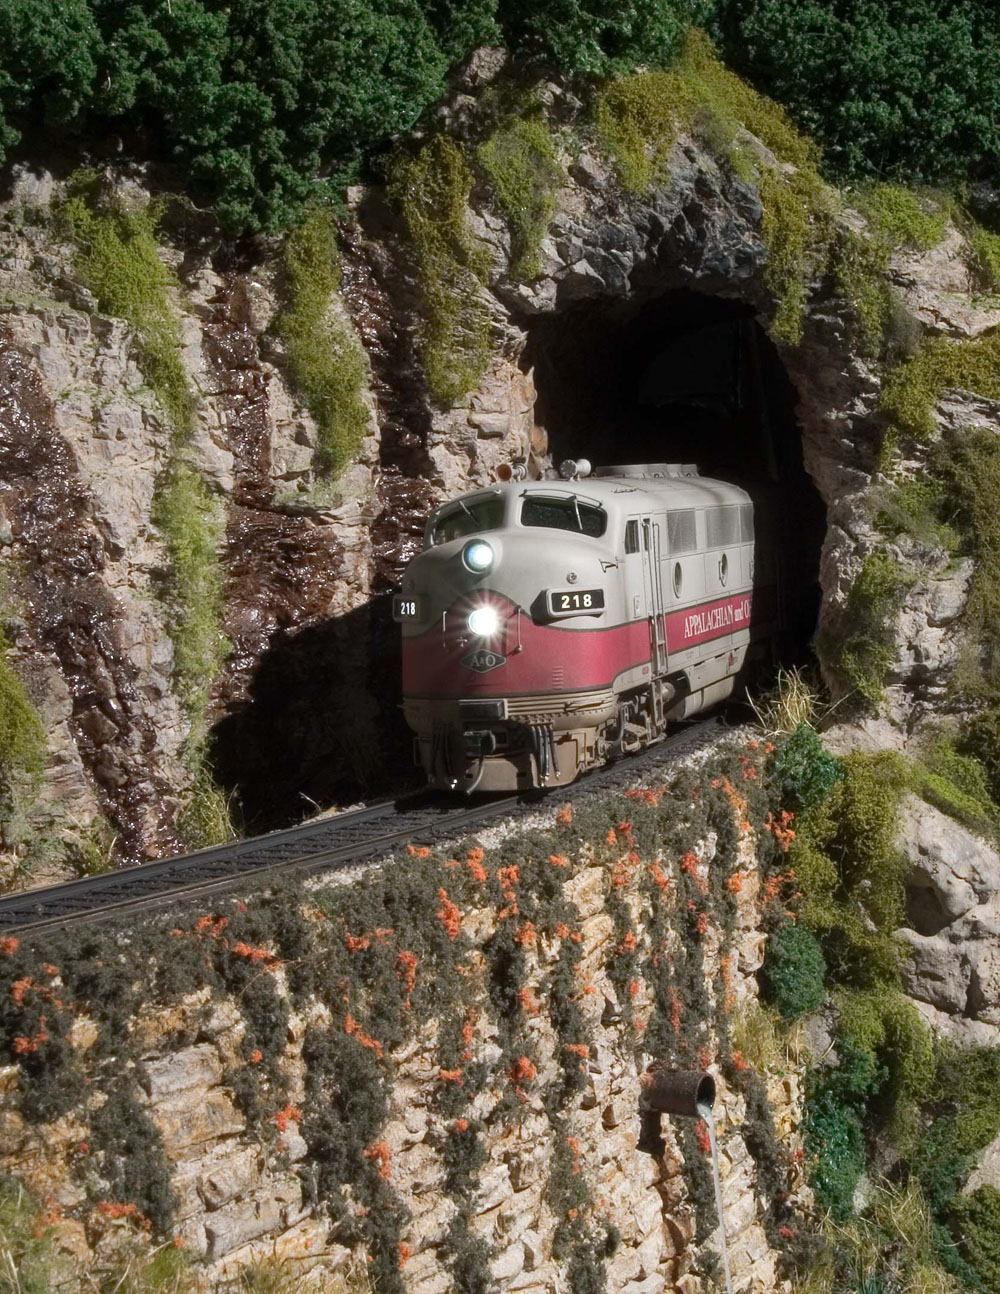 Bob Sobol's beautifully detailed P&D Hobbies F3 #218 exits Speedy Tunnel at milepost 234.